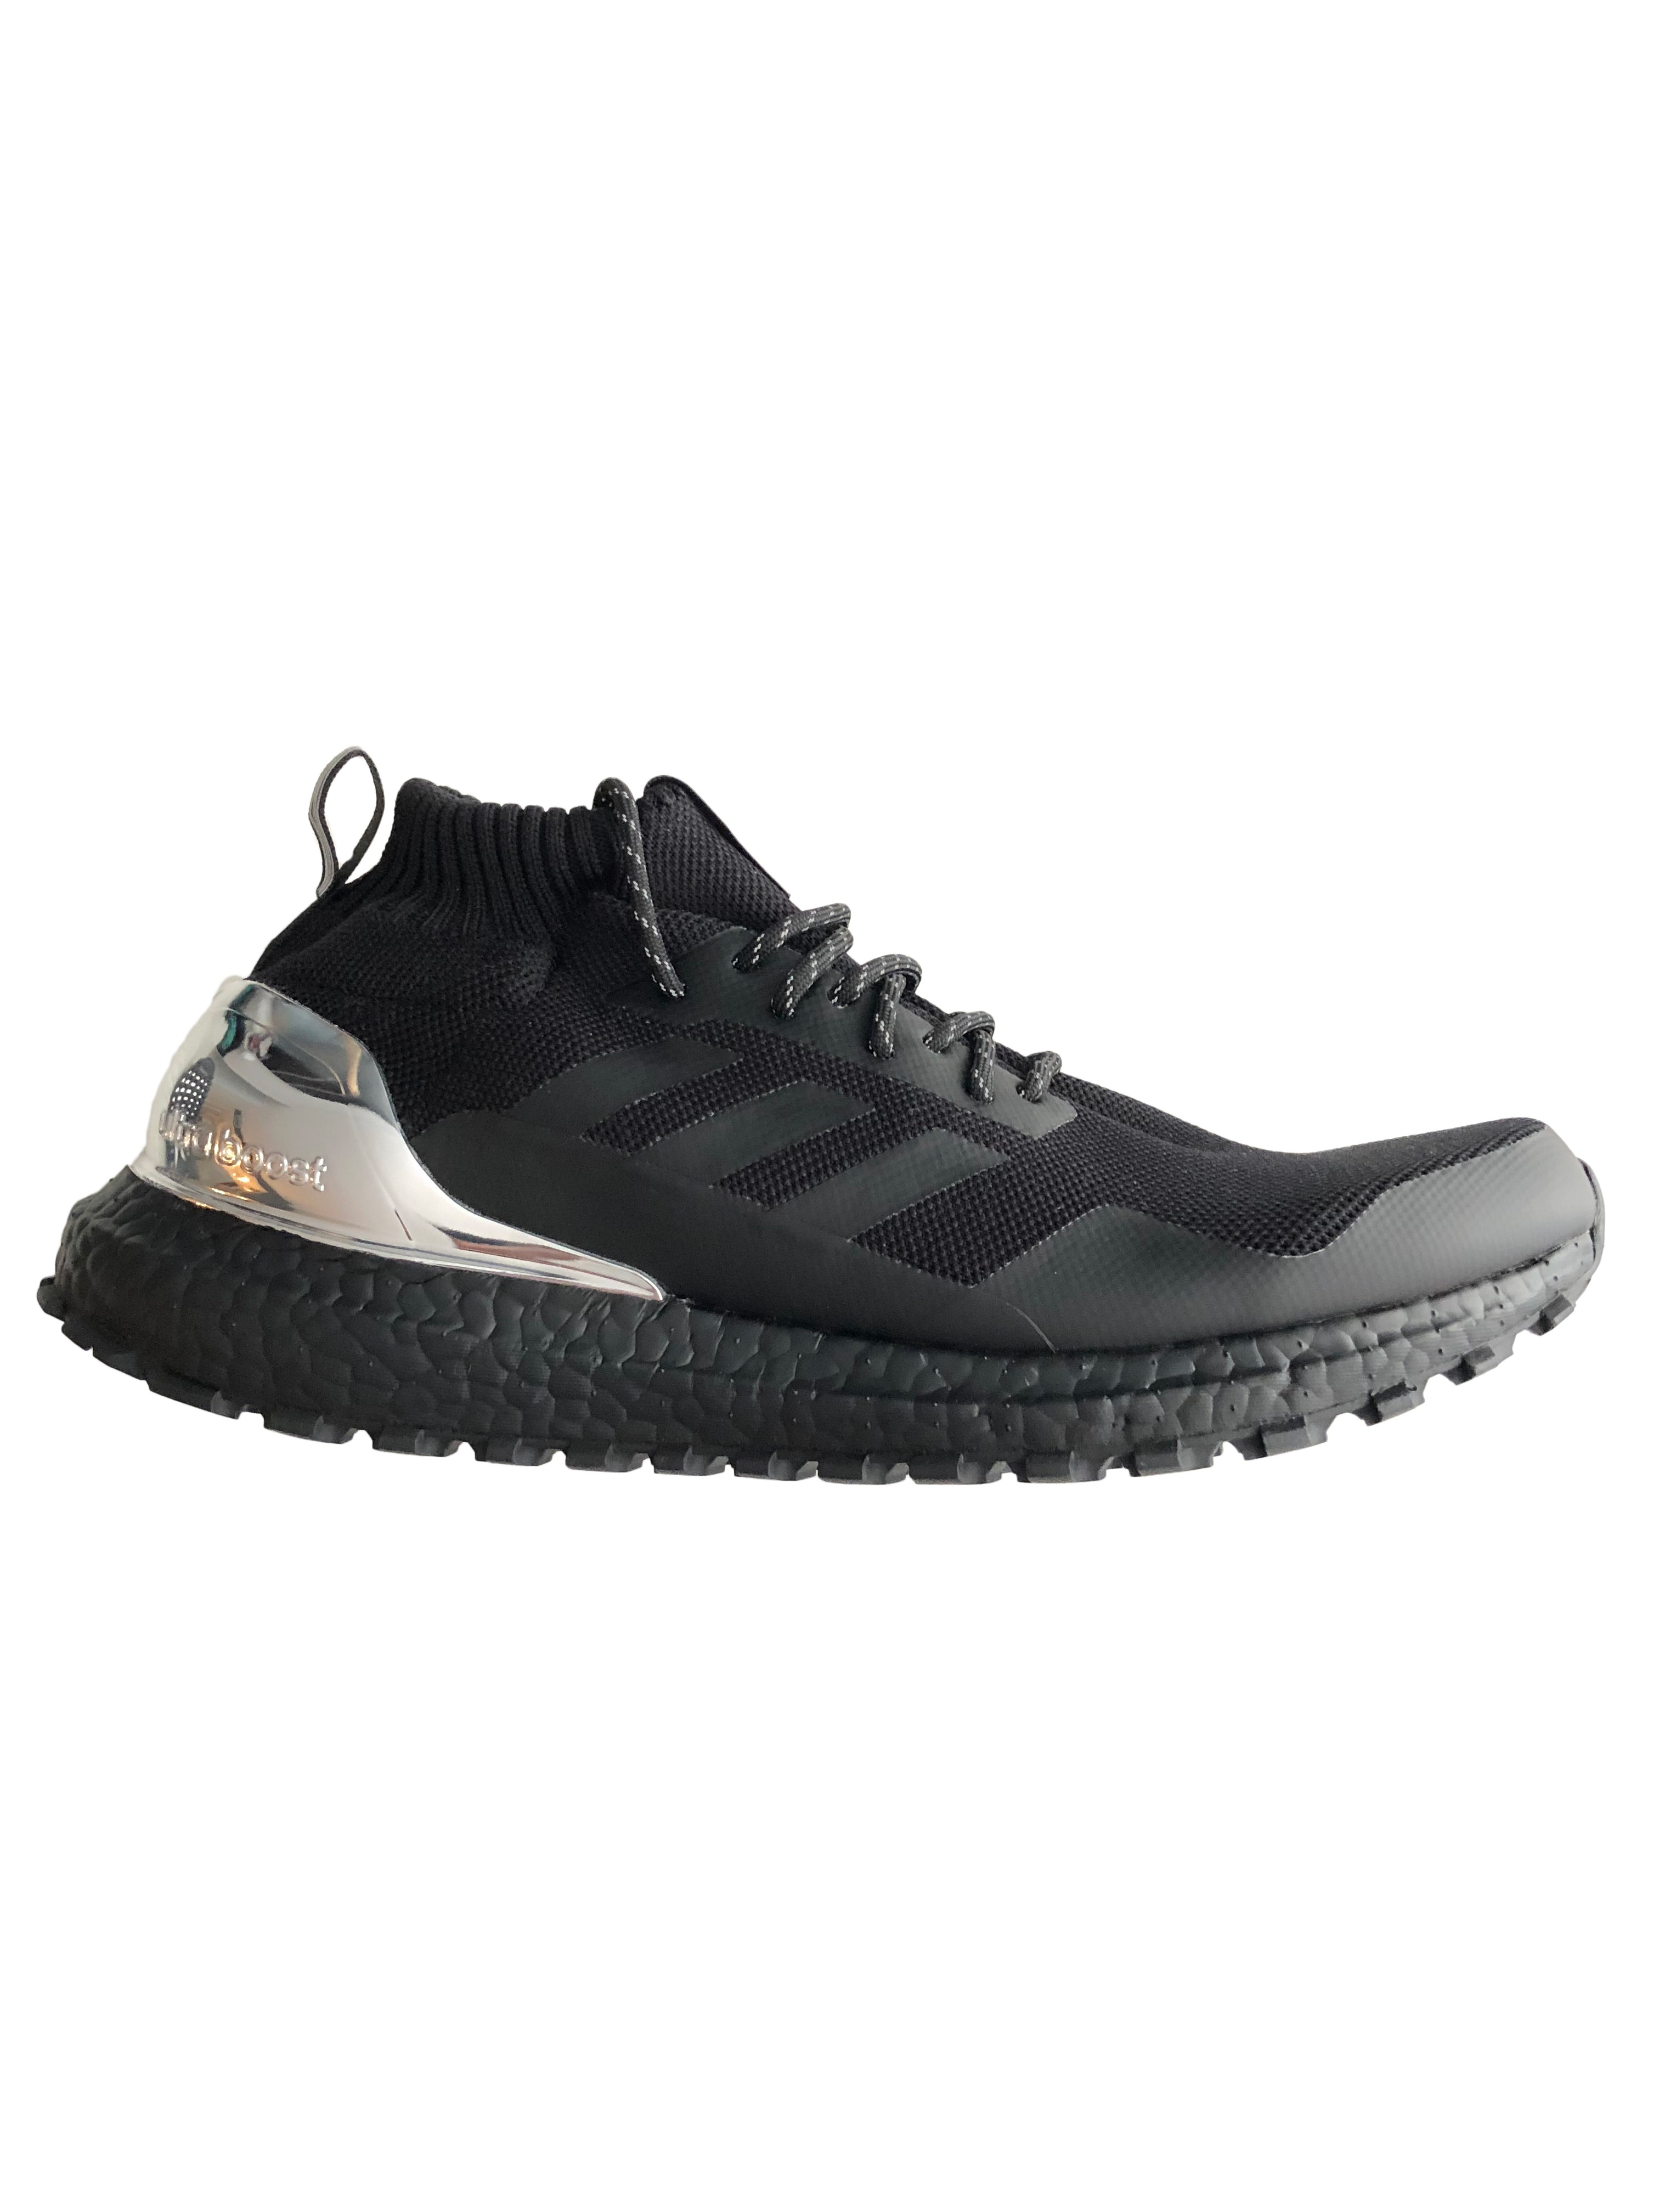 adidas Ultra Boost Mid Kith x Nonnative Friends and Family